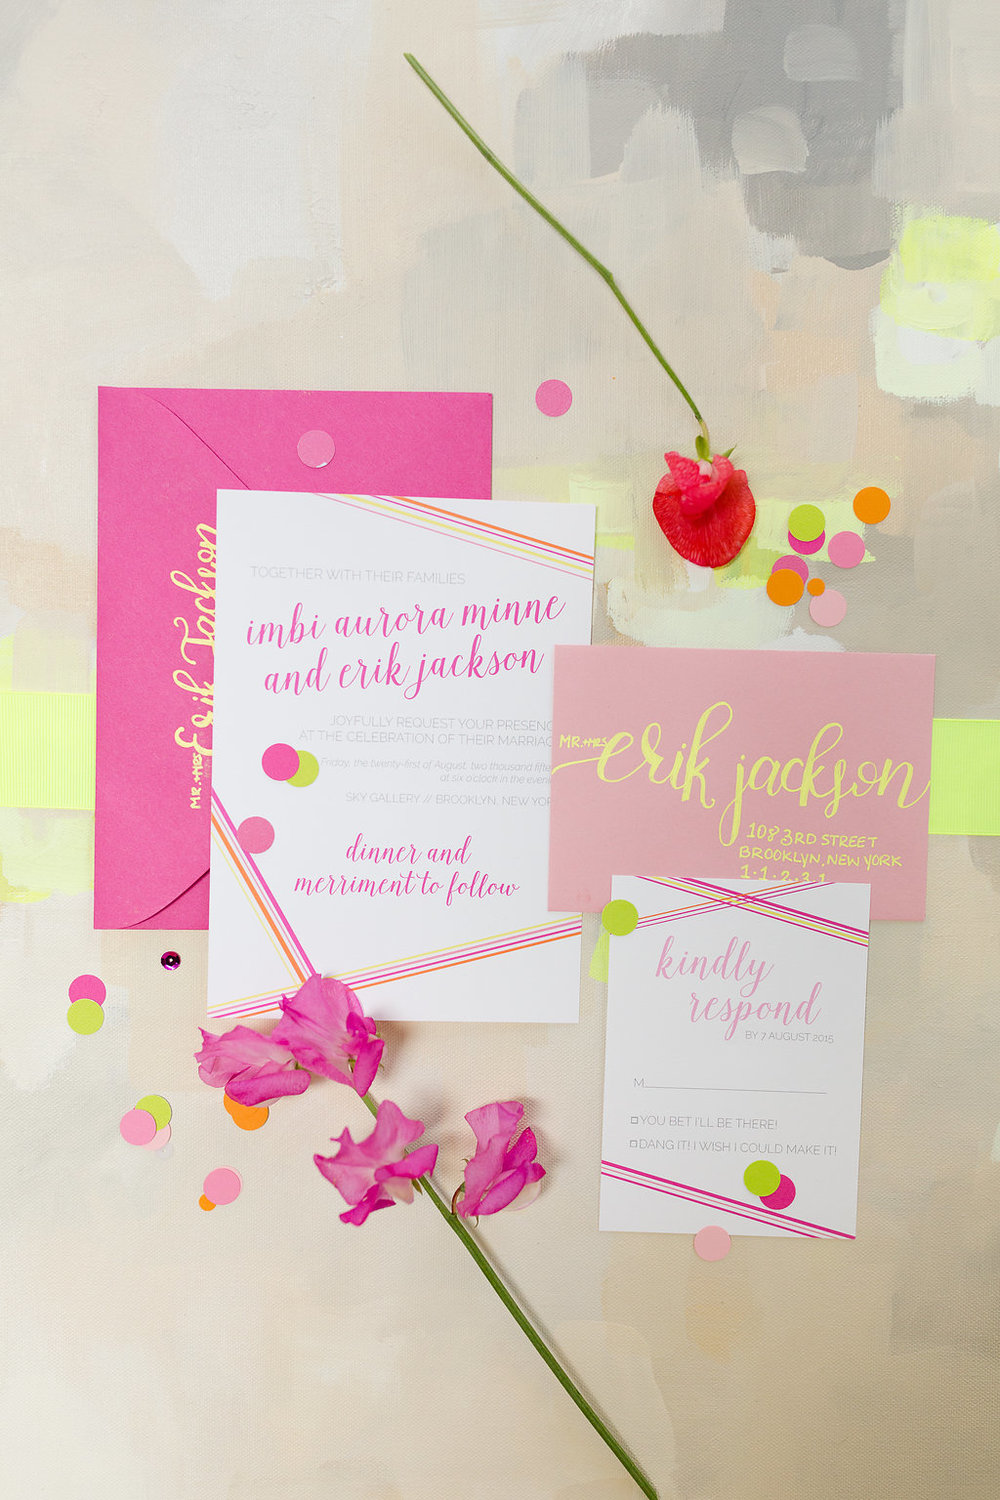 Neon Wedding Invitation Suite / festive-fetti™ confetti by The Marketplace on Brenda's Wedding Blog / stationery by Darling & Bliss / photo by Jessica Haley Photography